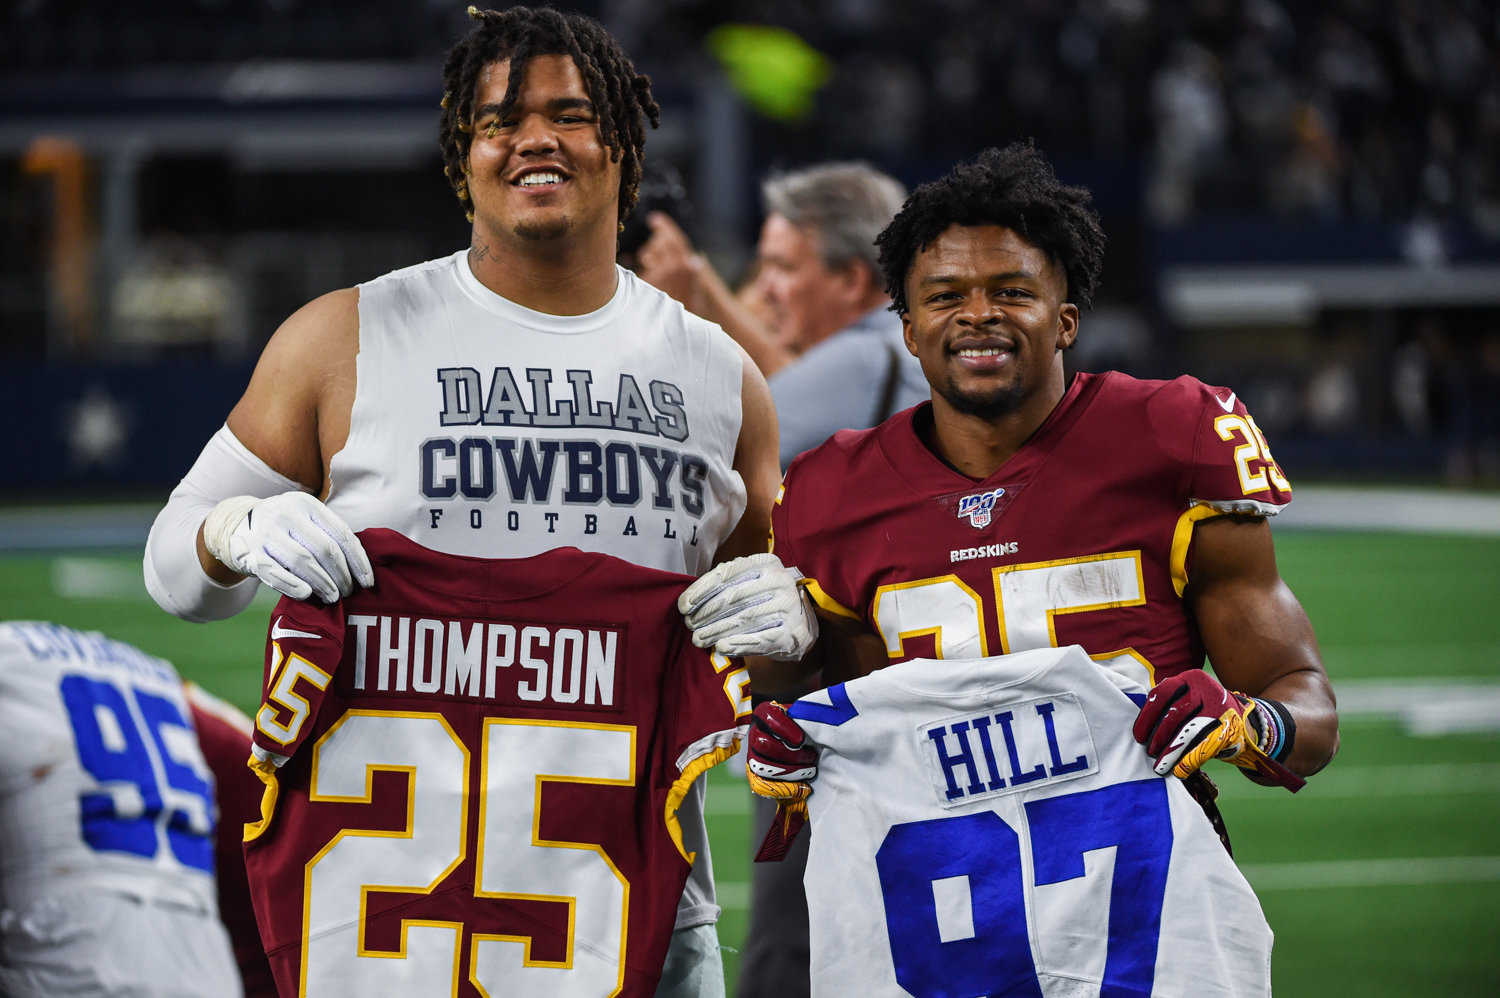 2019 Week 17: Redskins at Cowboys